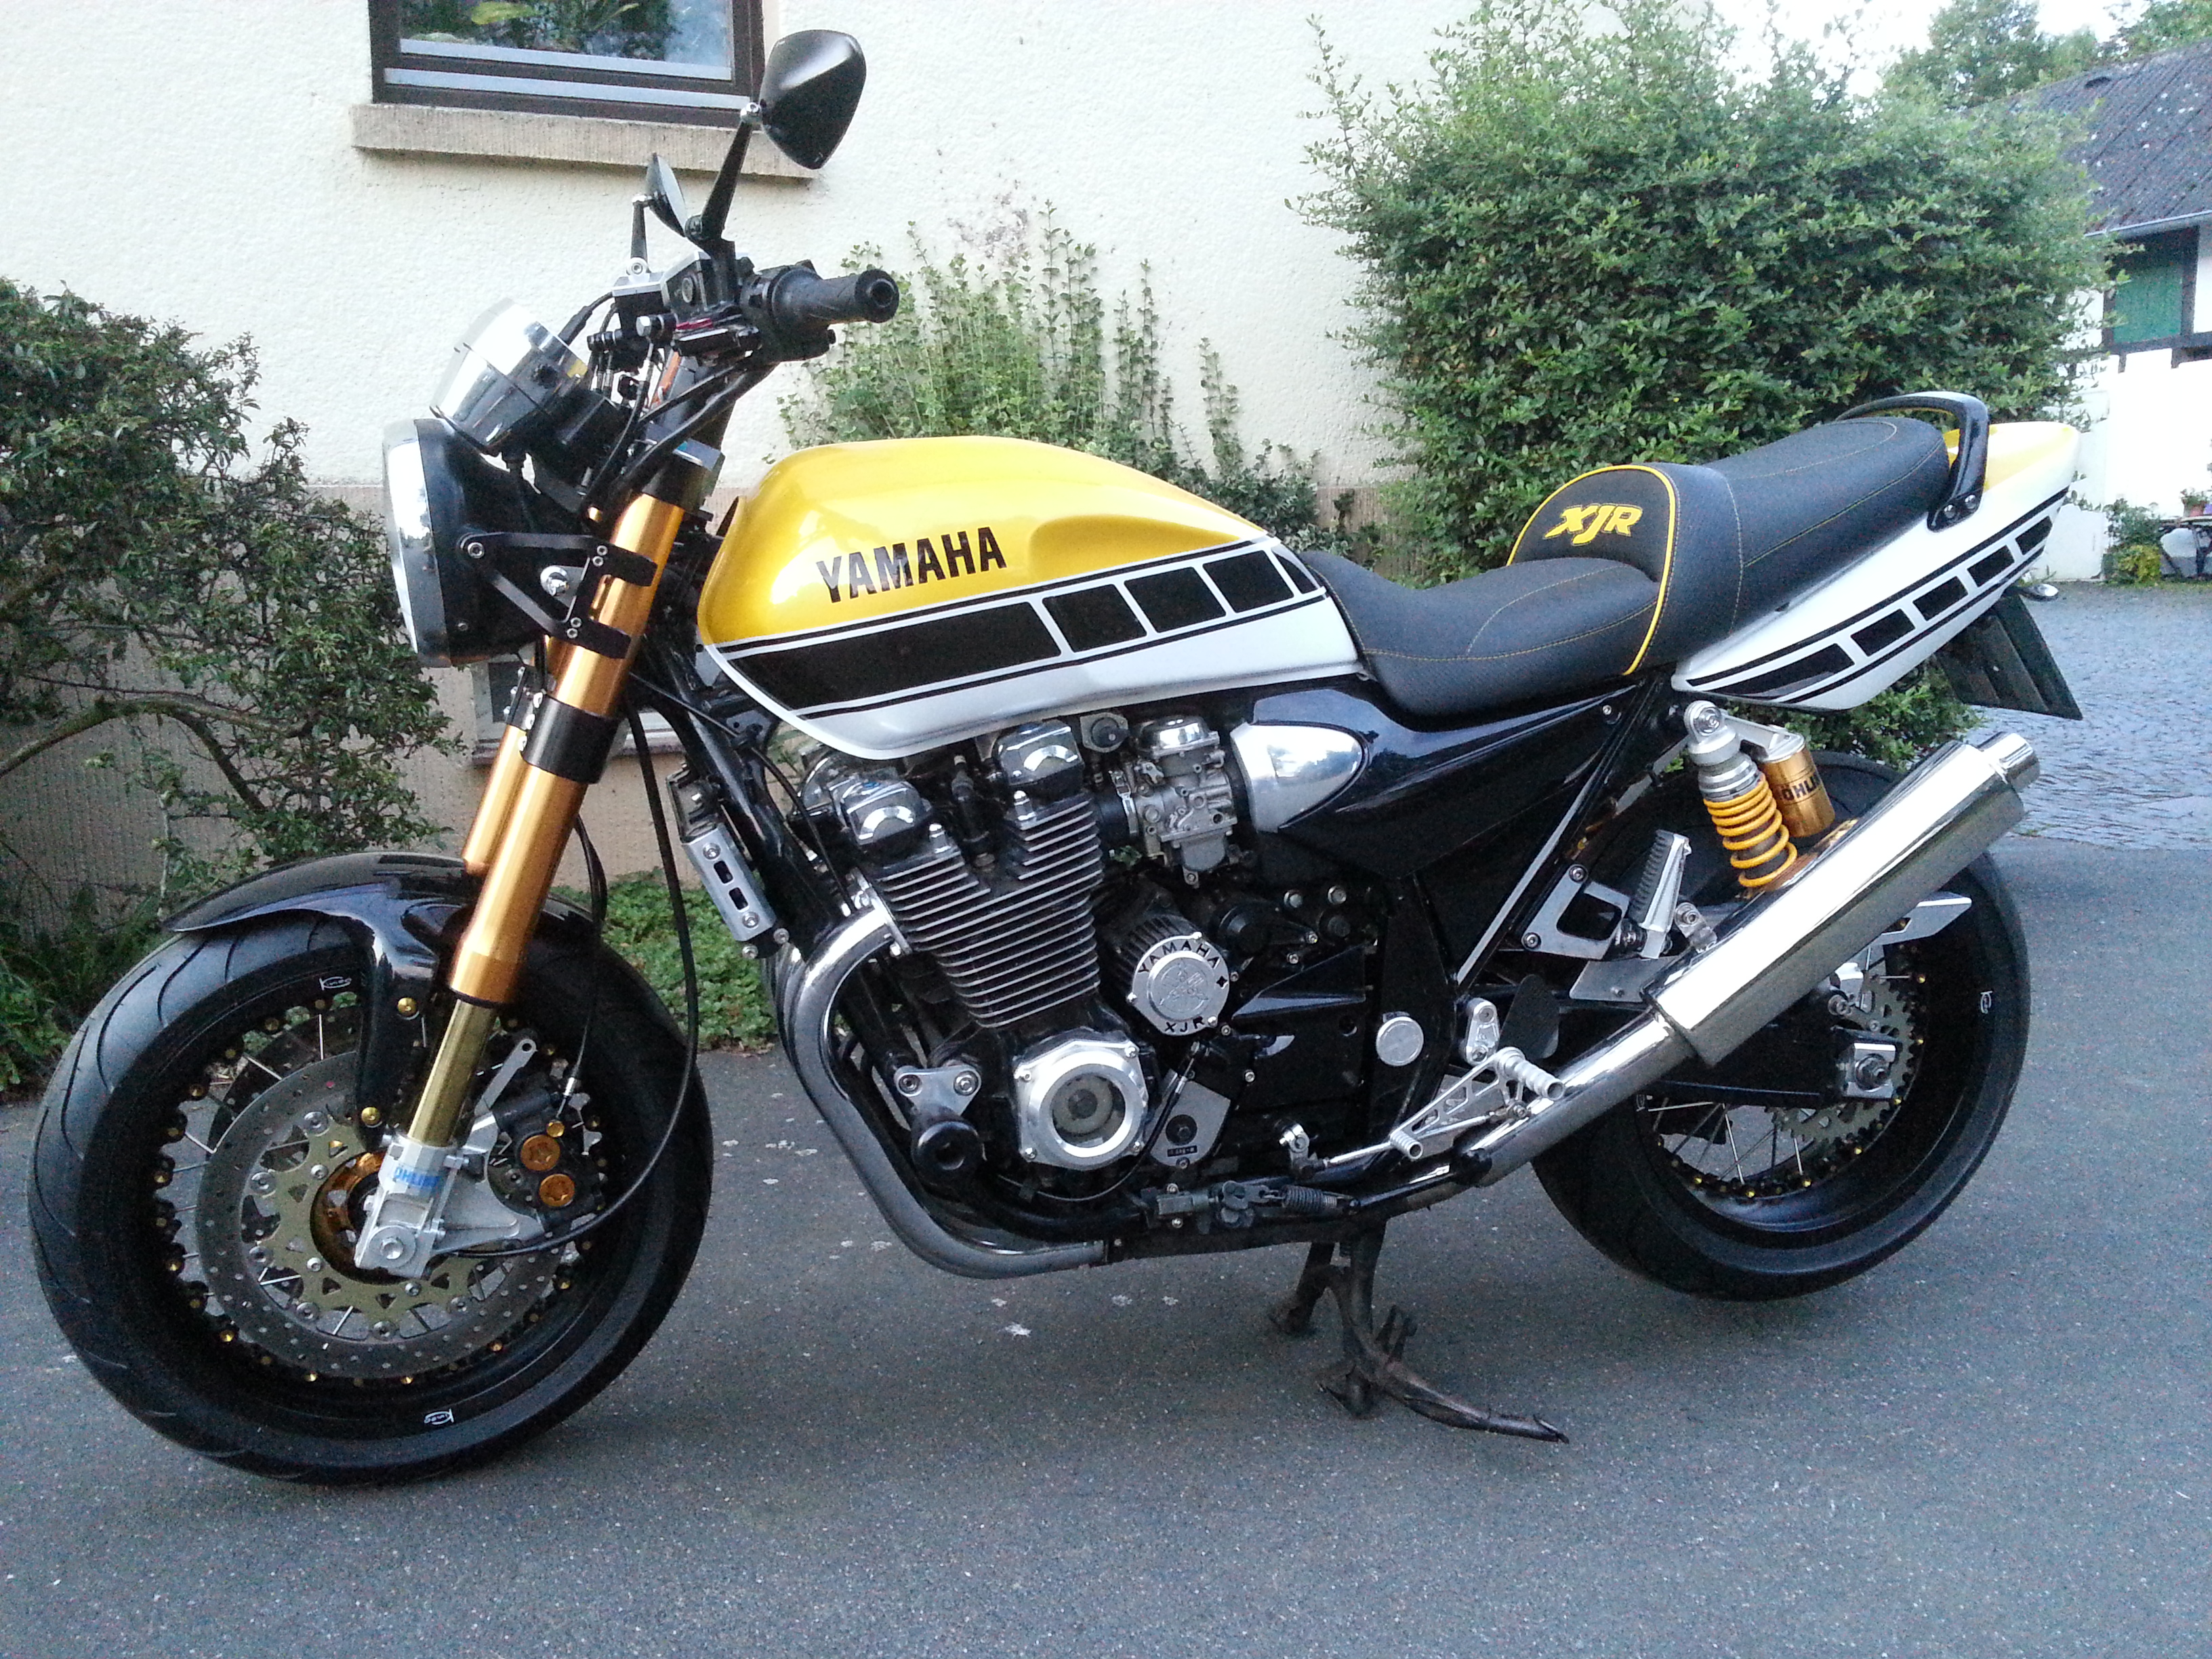 Xjr 1300 tuning hobbiesxstyle for Yamaha xjr 1300